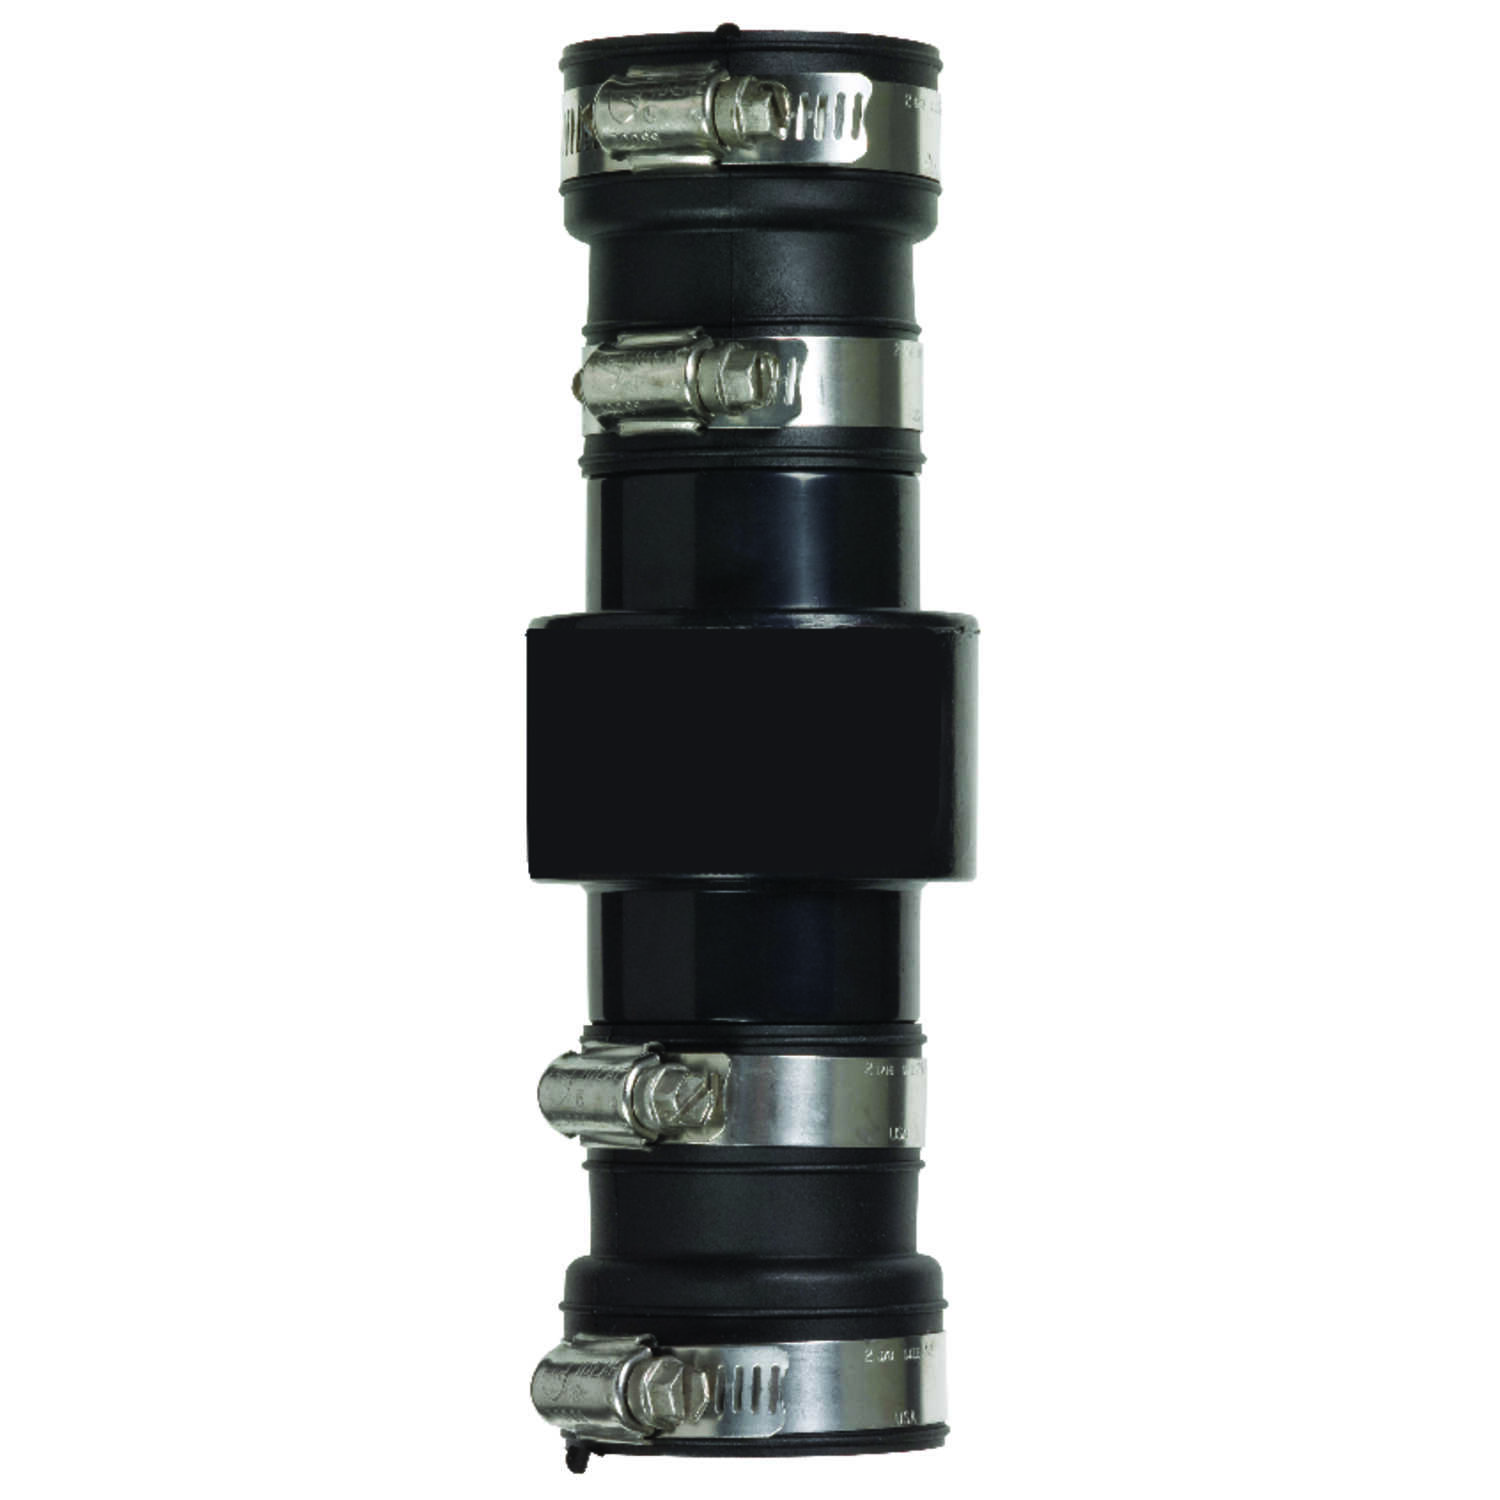 Ace  1 1/4 in. Slip x Slip  ABS Plastic  Double Reducing  Check Valve